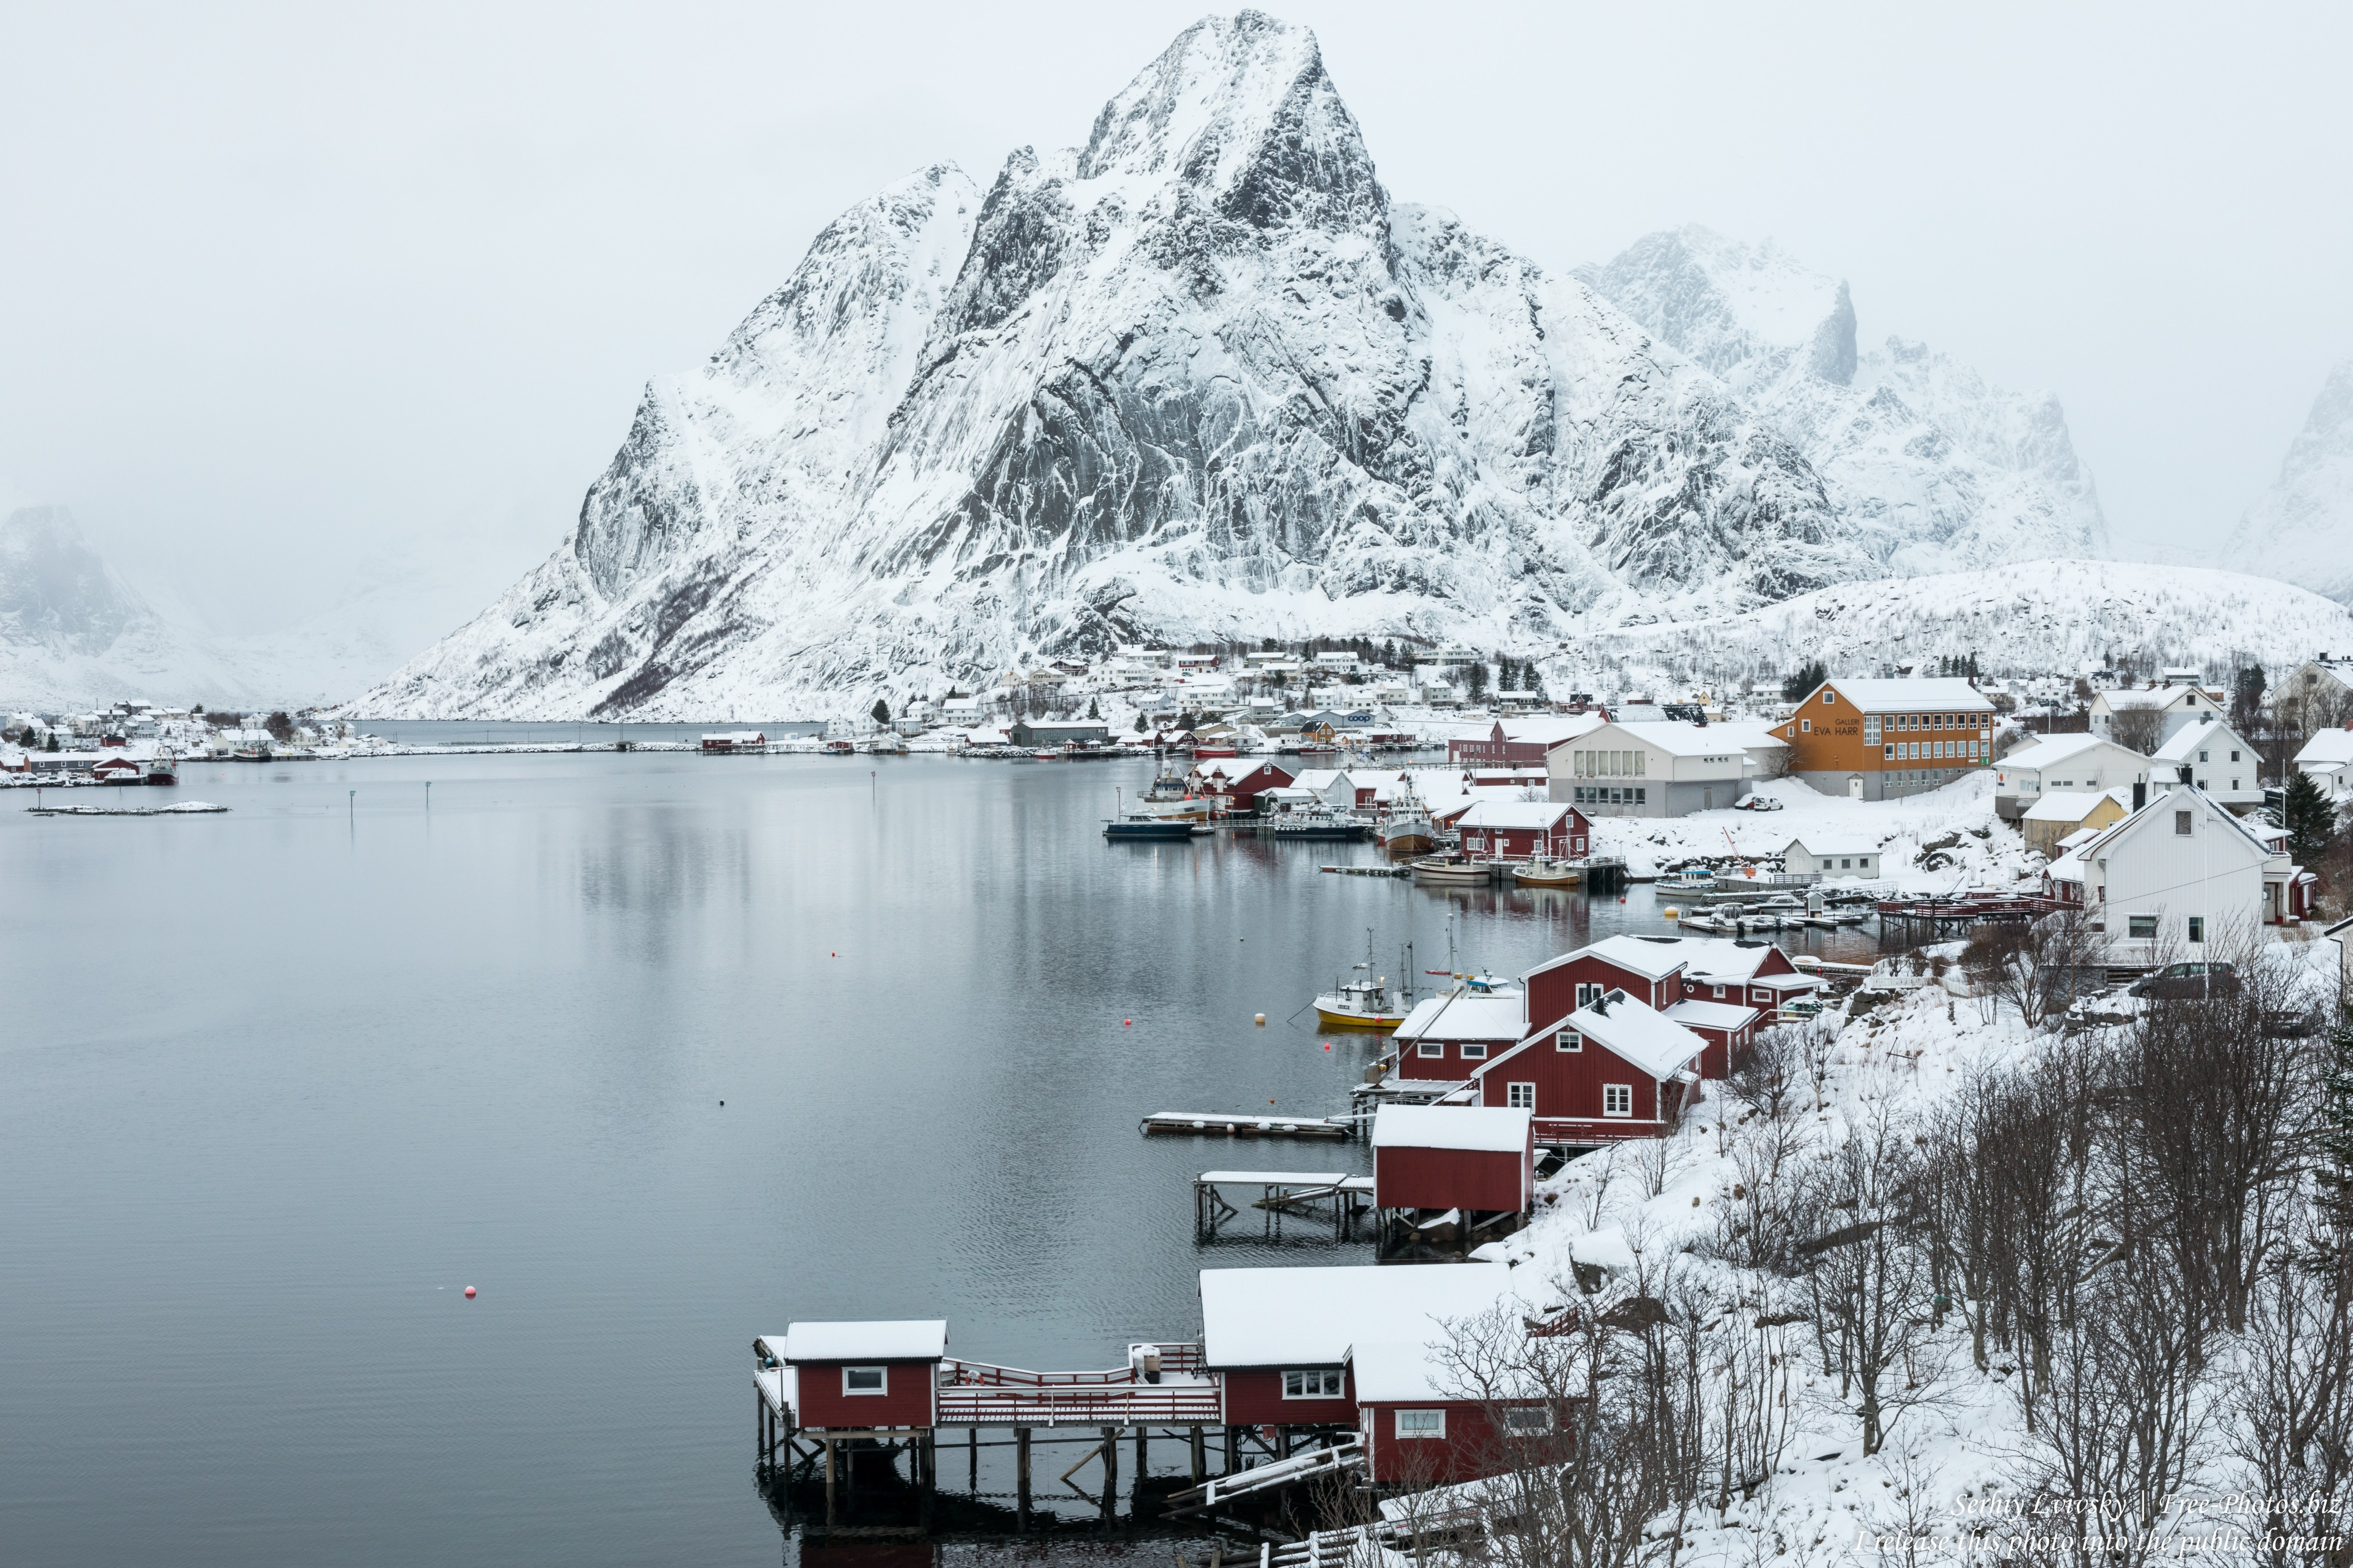 Reine and surroundings, Norway, in February 2020, by Serhiy Lvivsky, picture 2